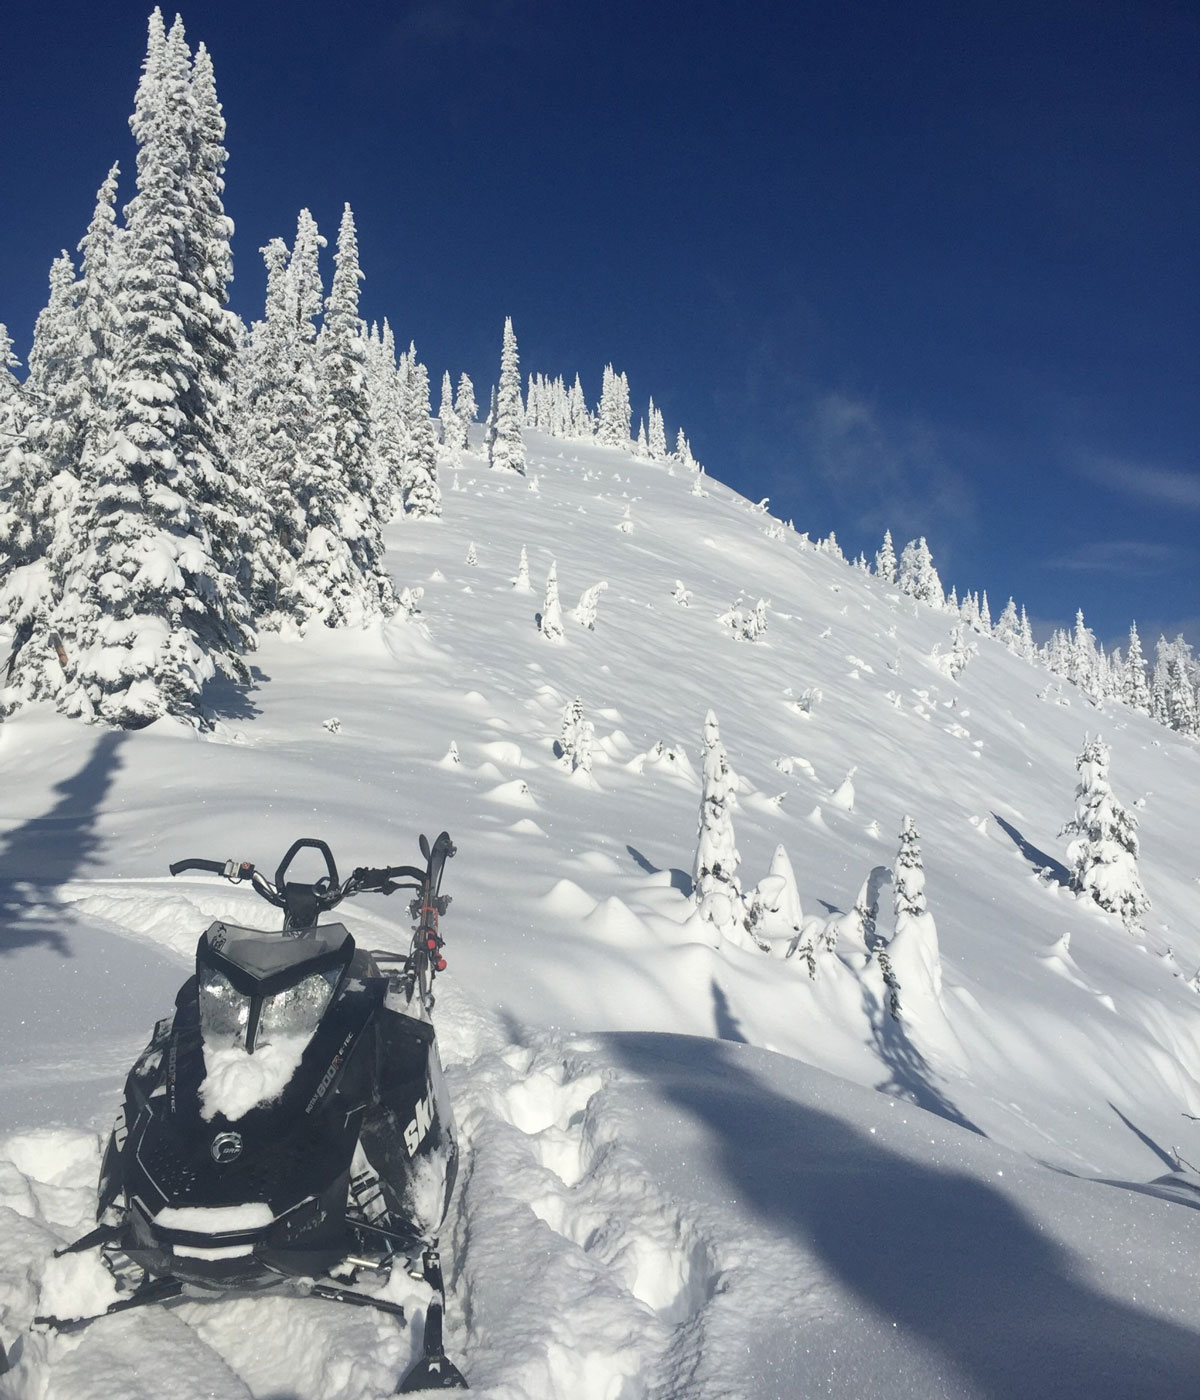 45 cm of fresh powder after the first big storm of the season in Kaslo, BC